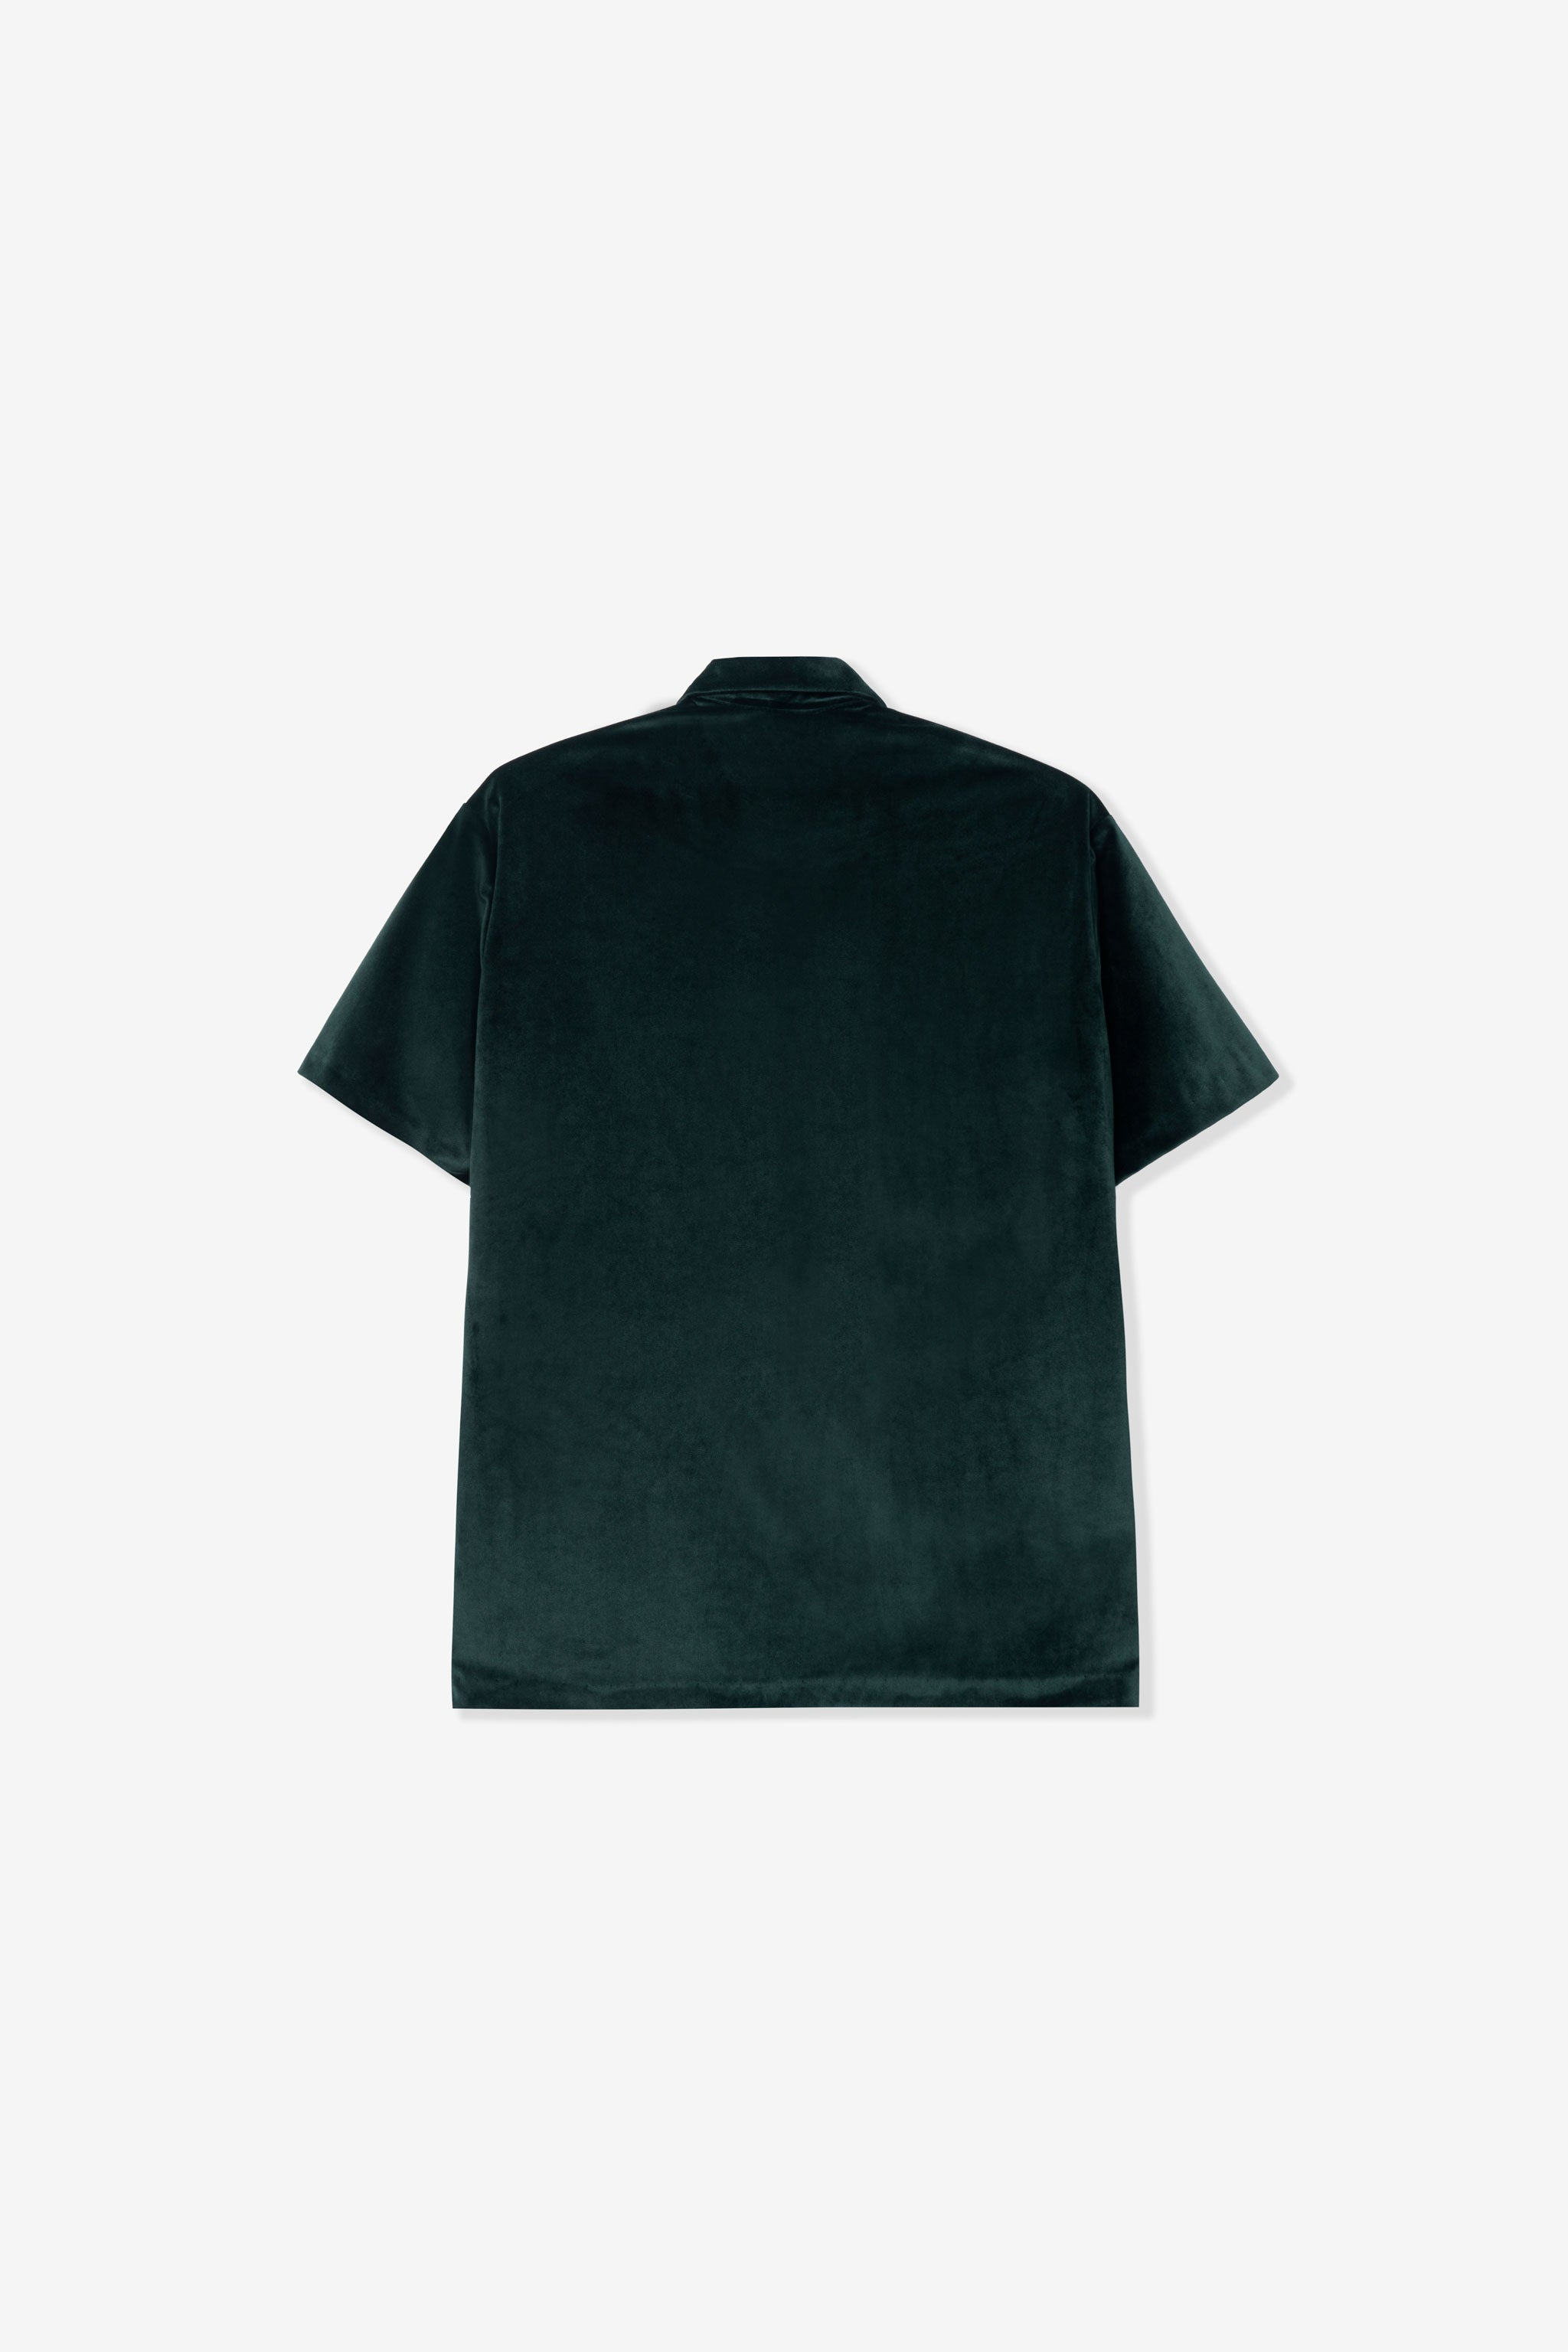 Goodfight Sound Room SS Shirt Green